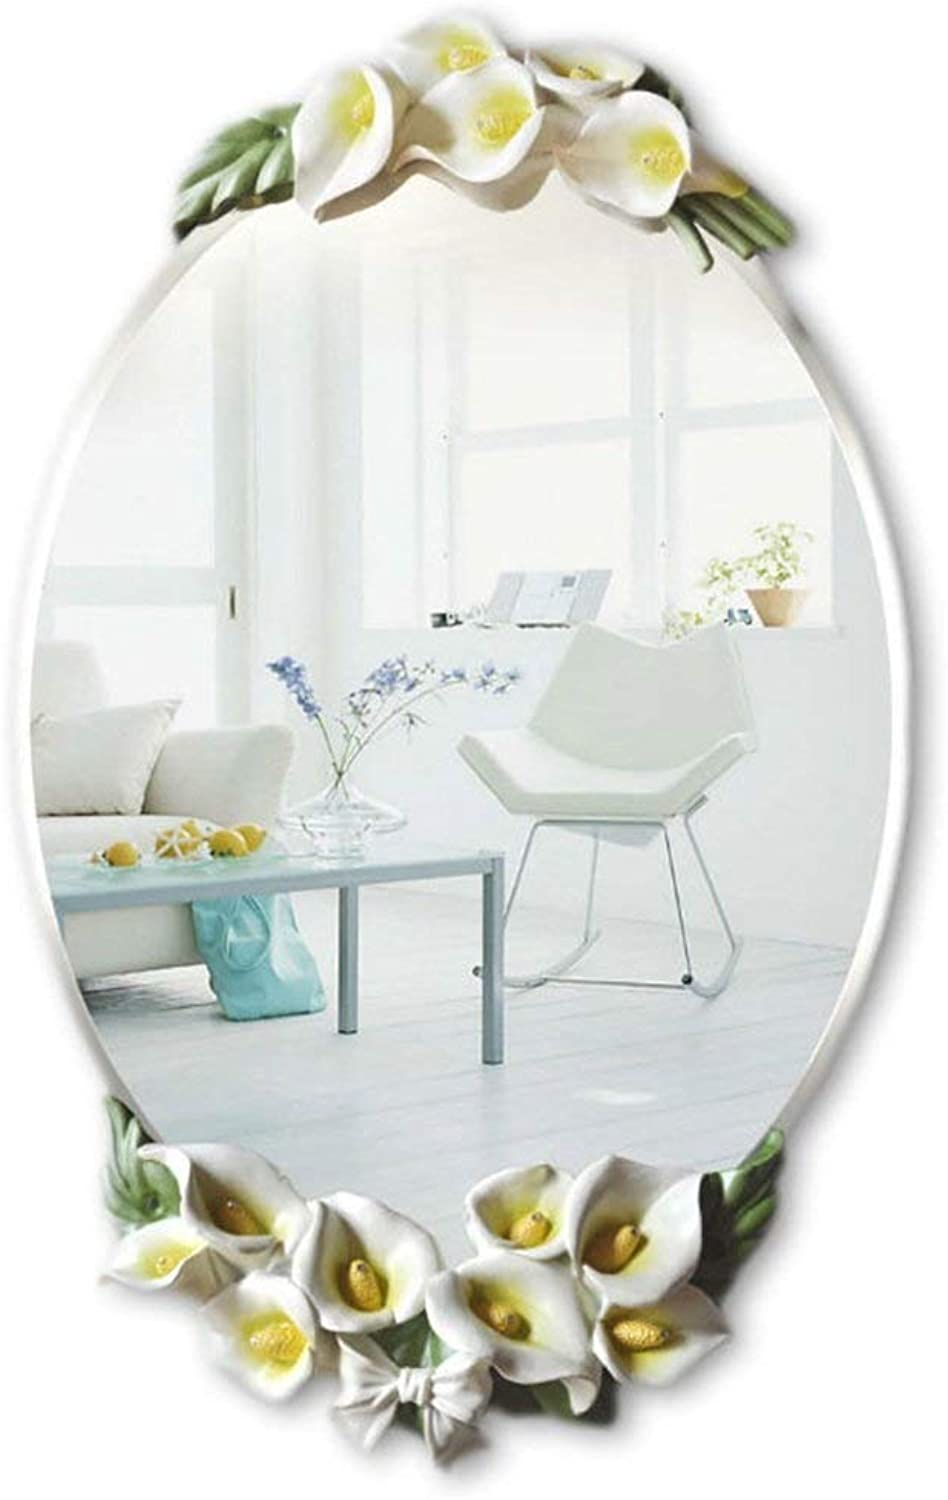 XIUXIU Mirror Wall-Mounted Flower Home Background Decorative Mirror Oval Resin Vanity Mirror (color   Yellow)